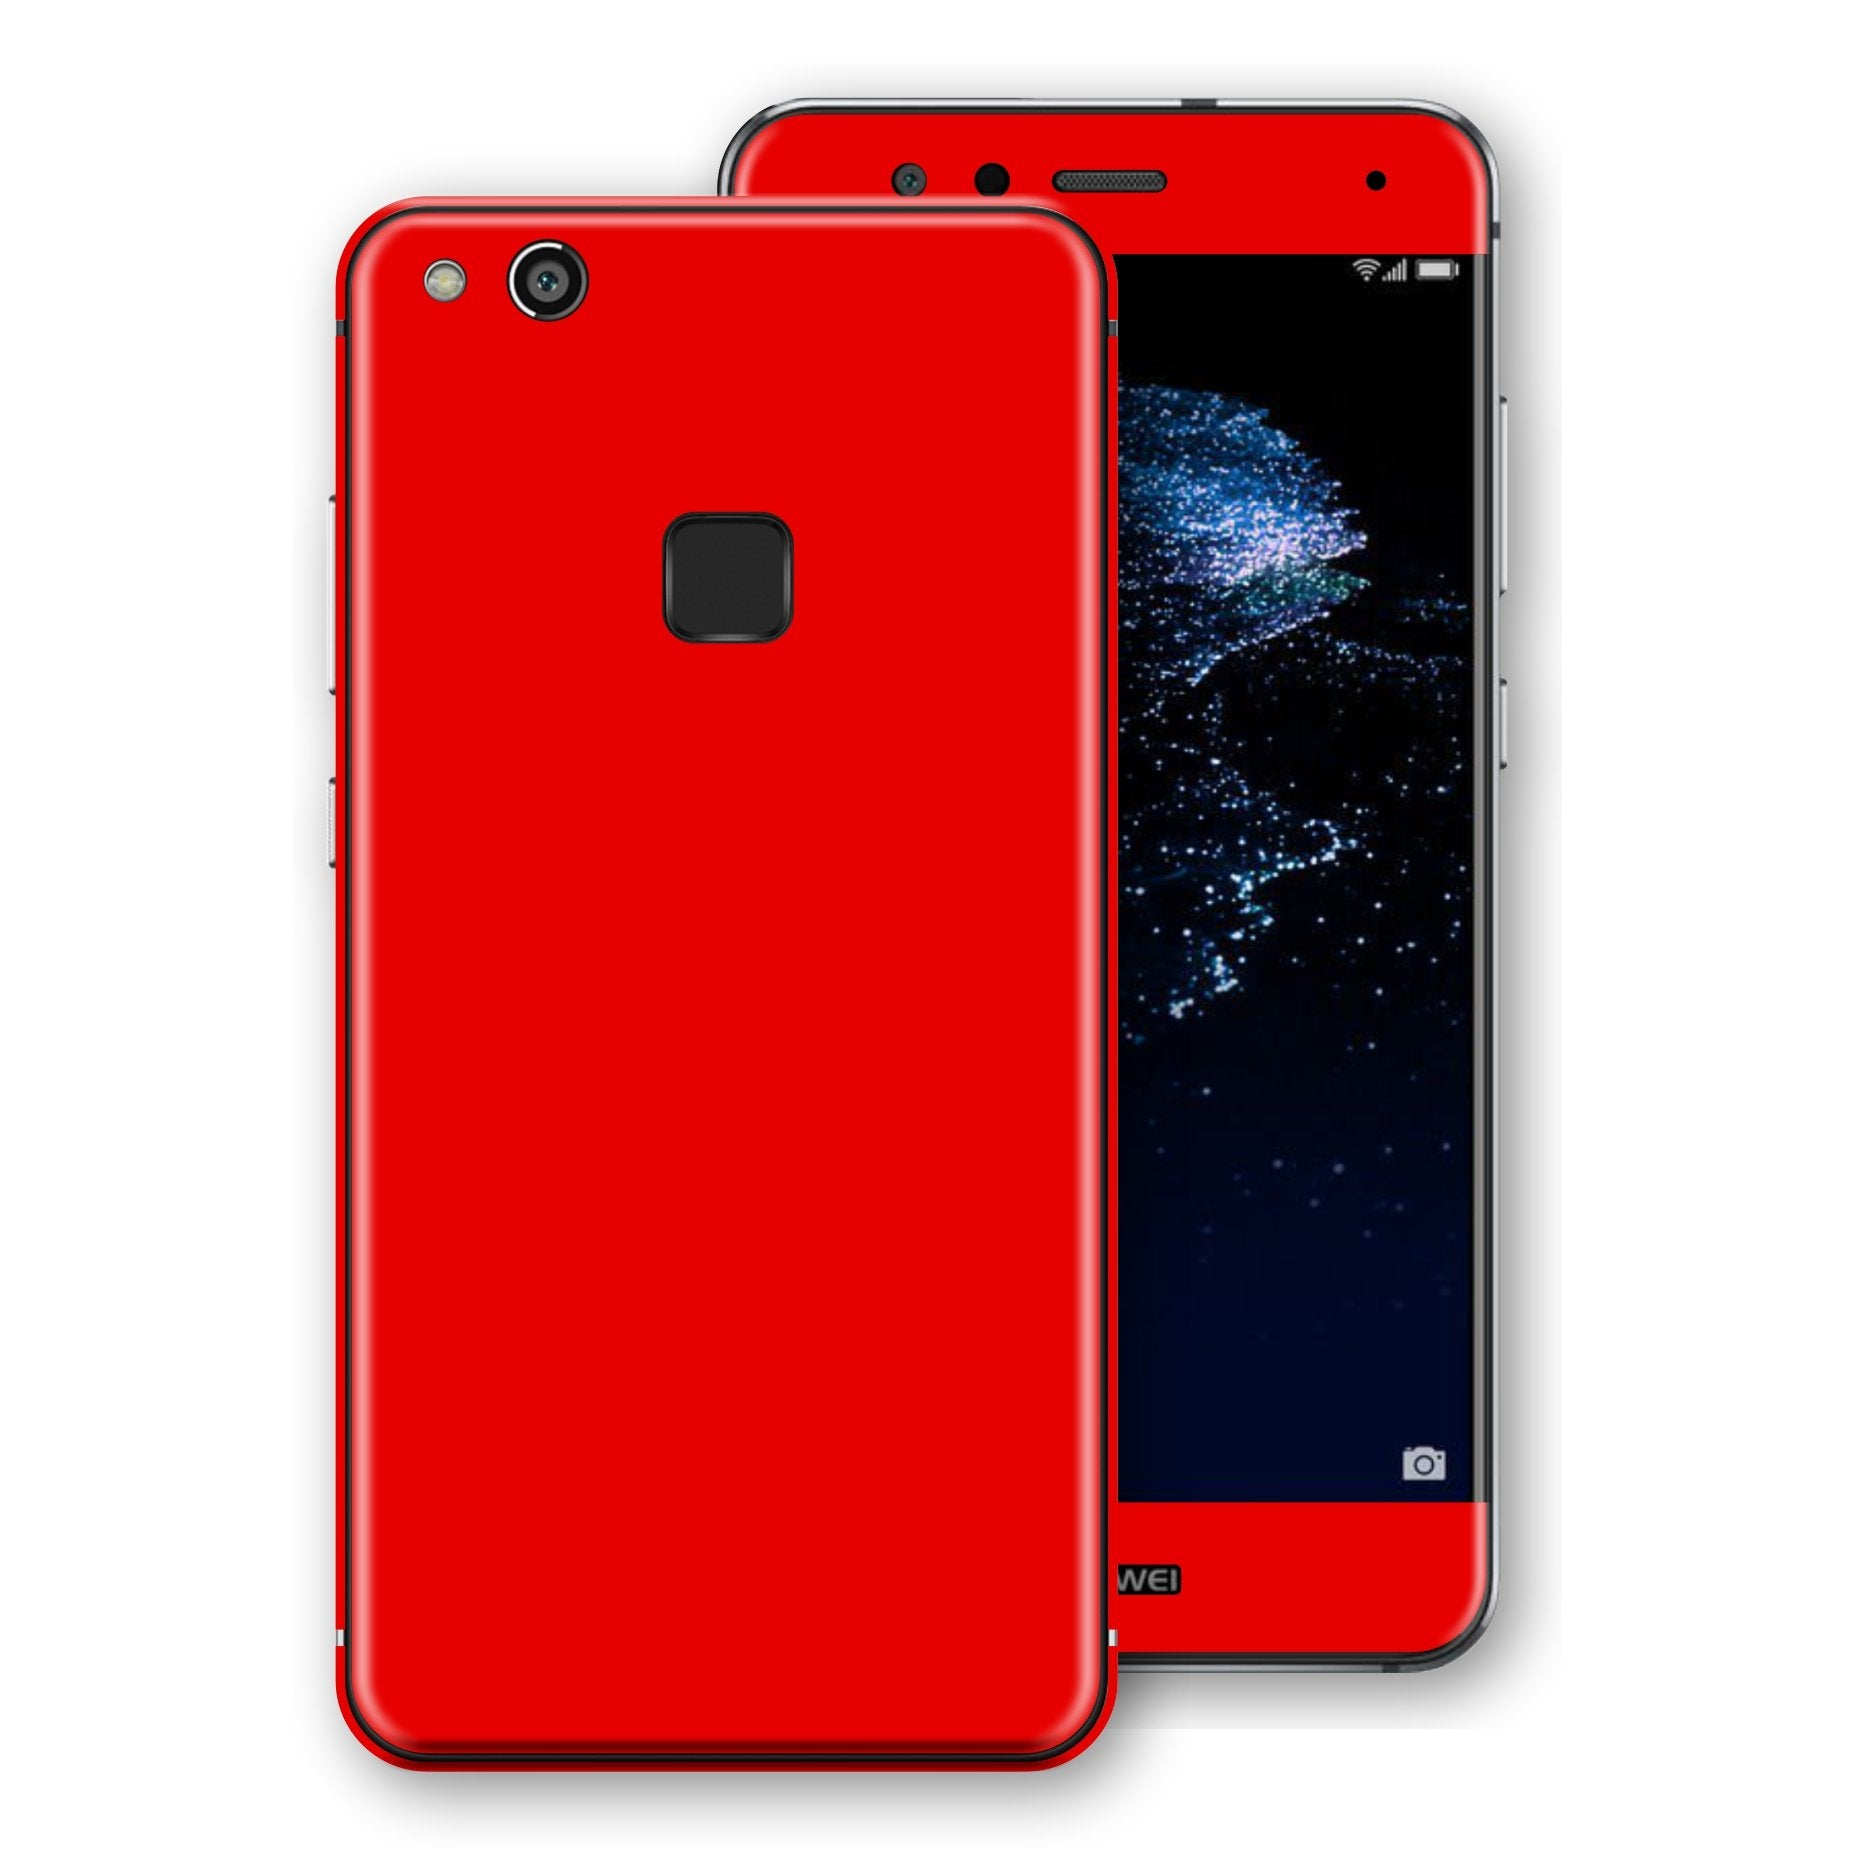 Huawei P10 LITE Bright Red Glossy Gloss Finish Skin, Decal, Wrap, Protector, Cover by EasySkinz | EasySkinz.com